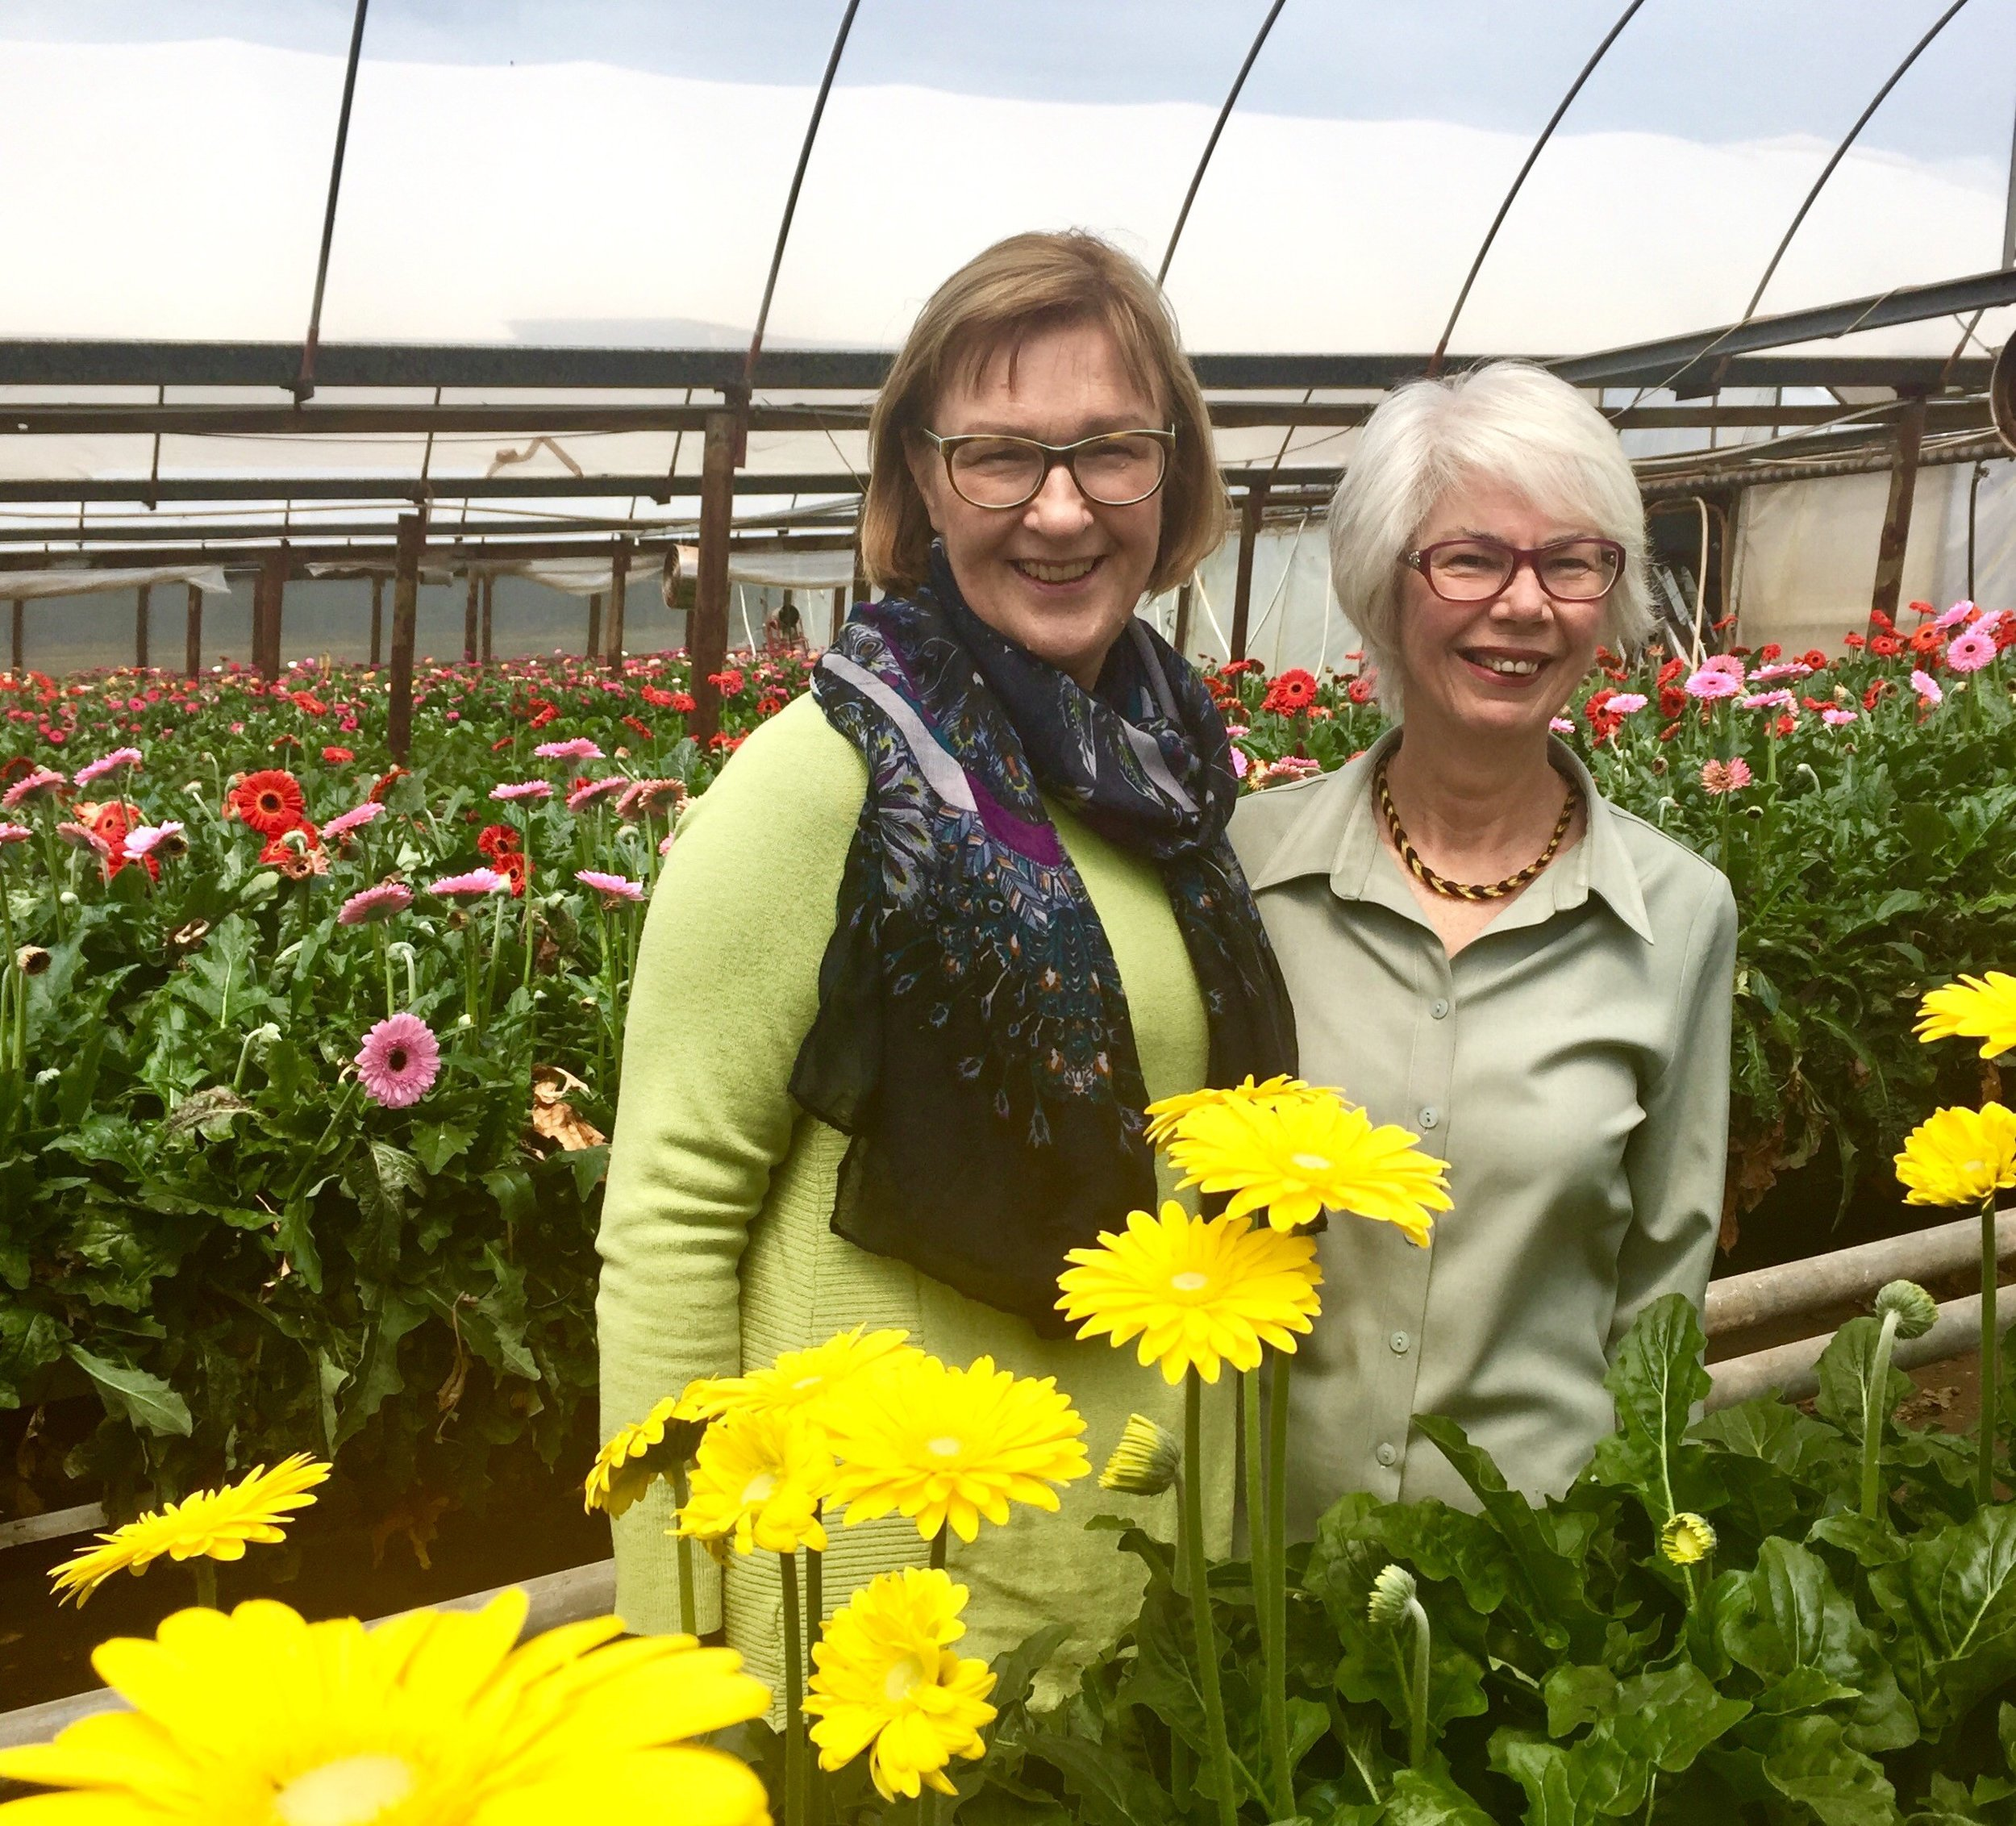 Ilse Matthews (left) and Allison Brinson (right) at Proteaflora Flowers, 2017, image supplied.